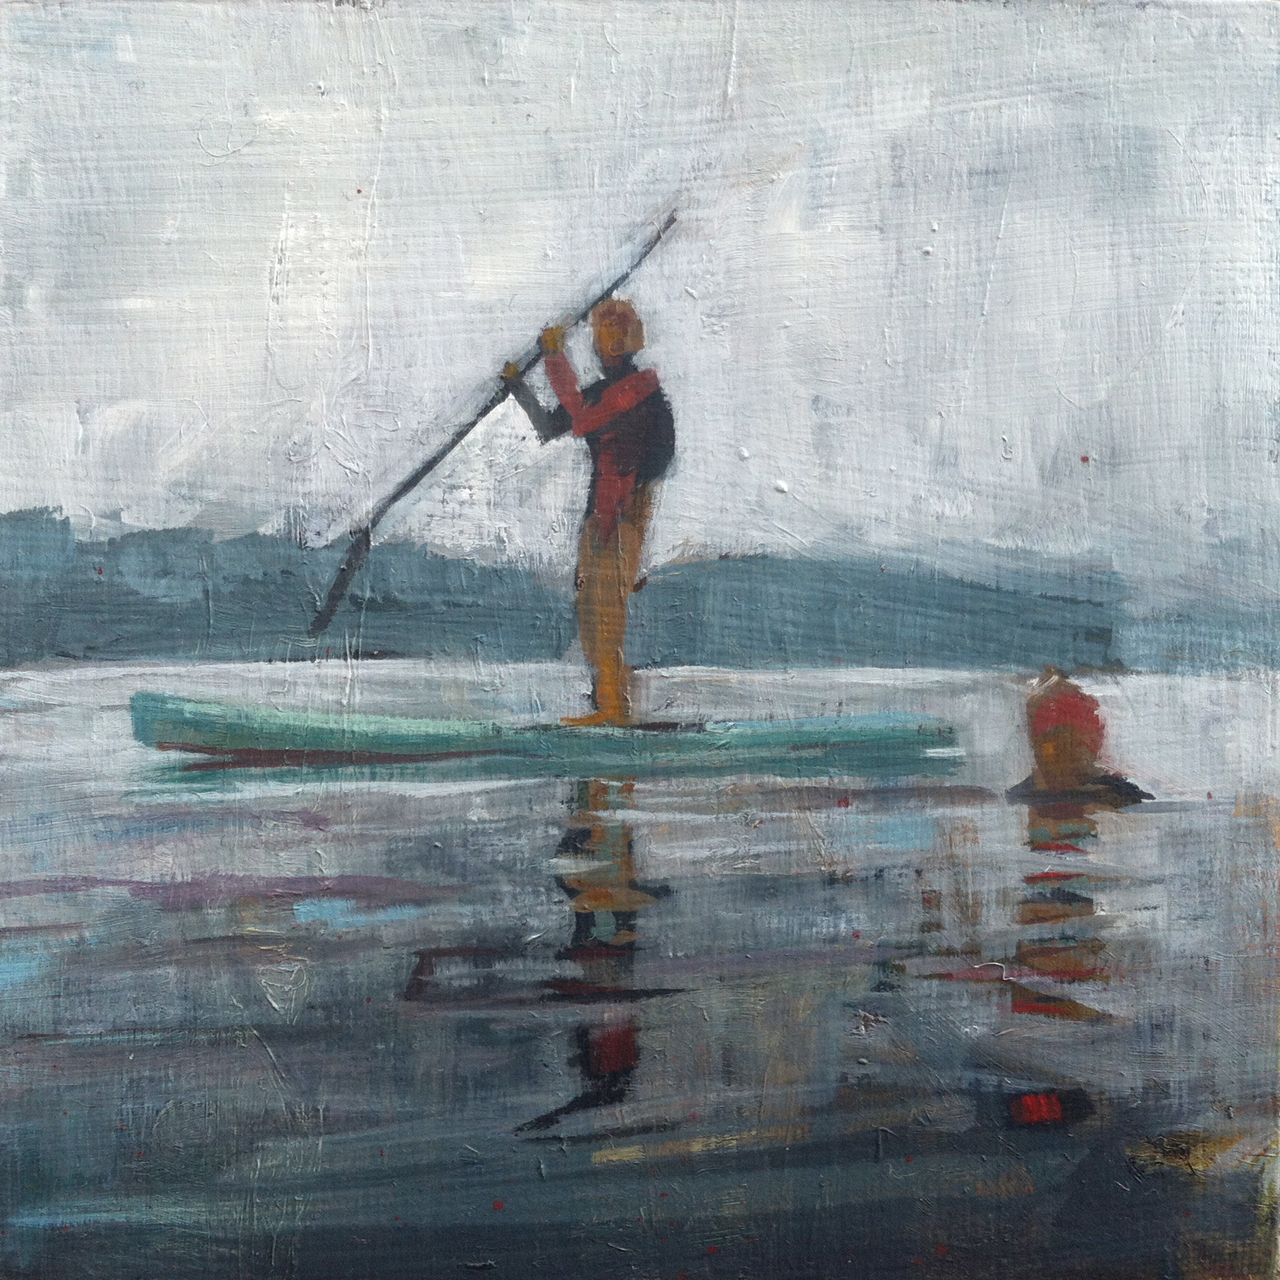 Paddler, Swimmer // oil on panel // 6 x 6 inches